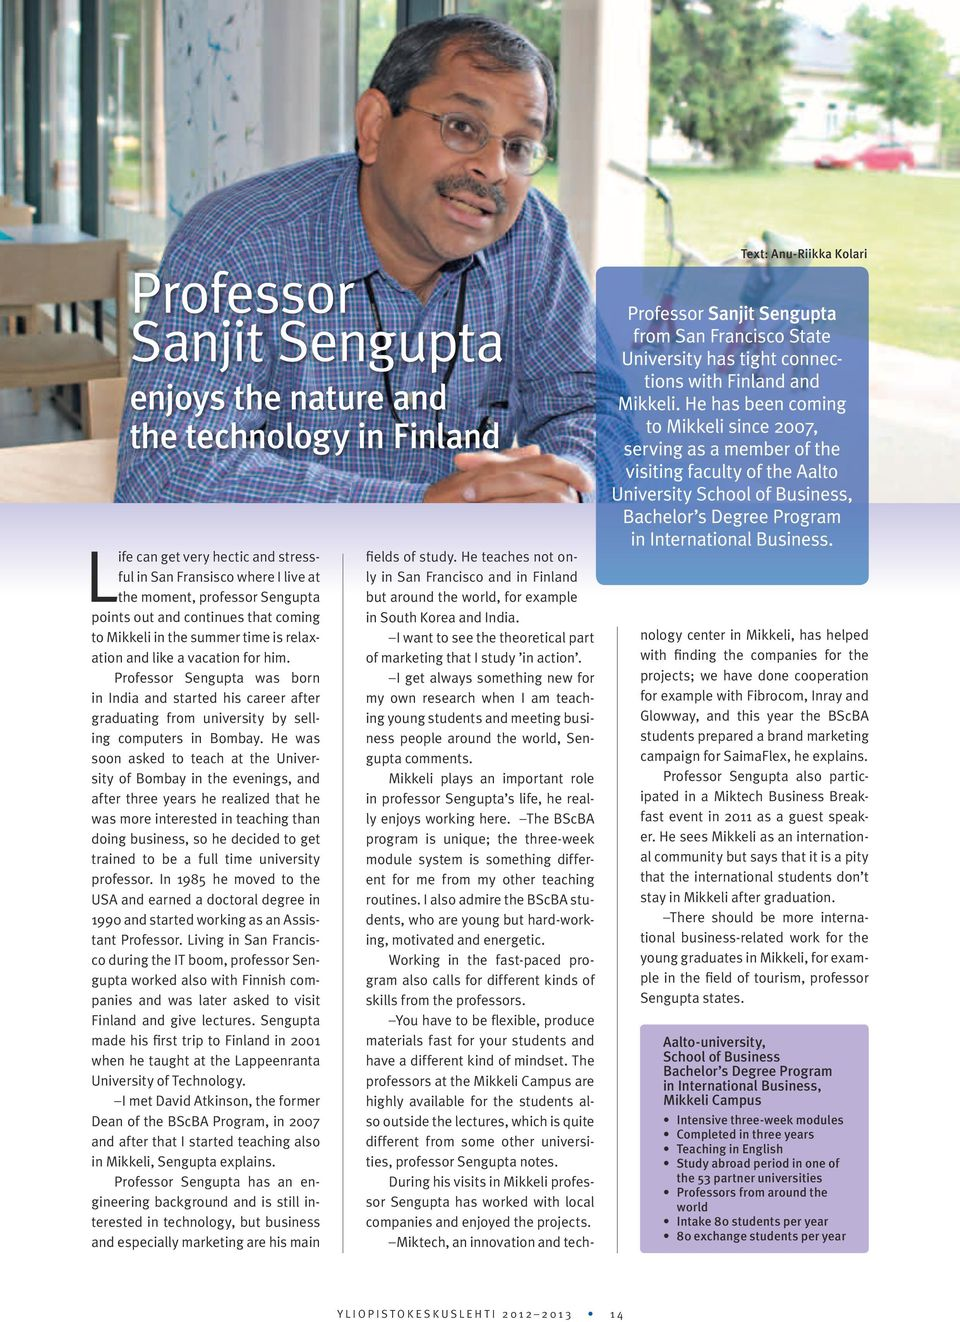 Professor Sengupta was born in India and started his career after graduating from university by selling computers in Bombay.